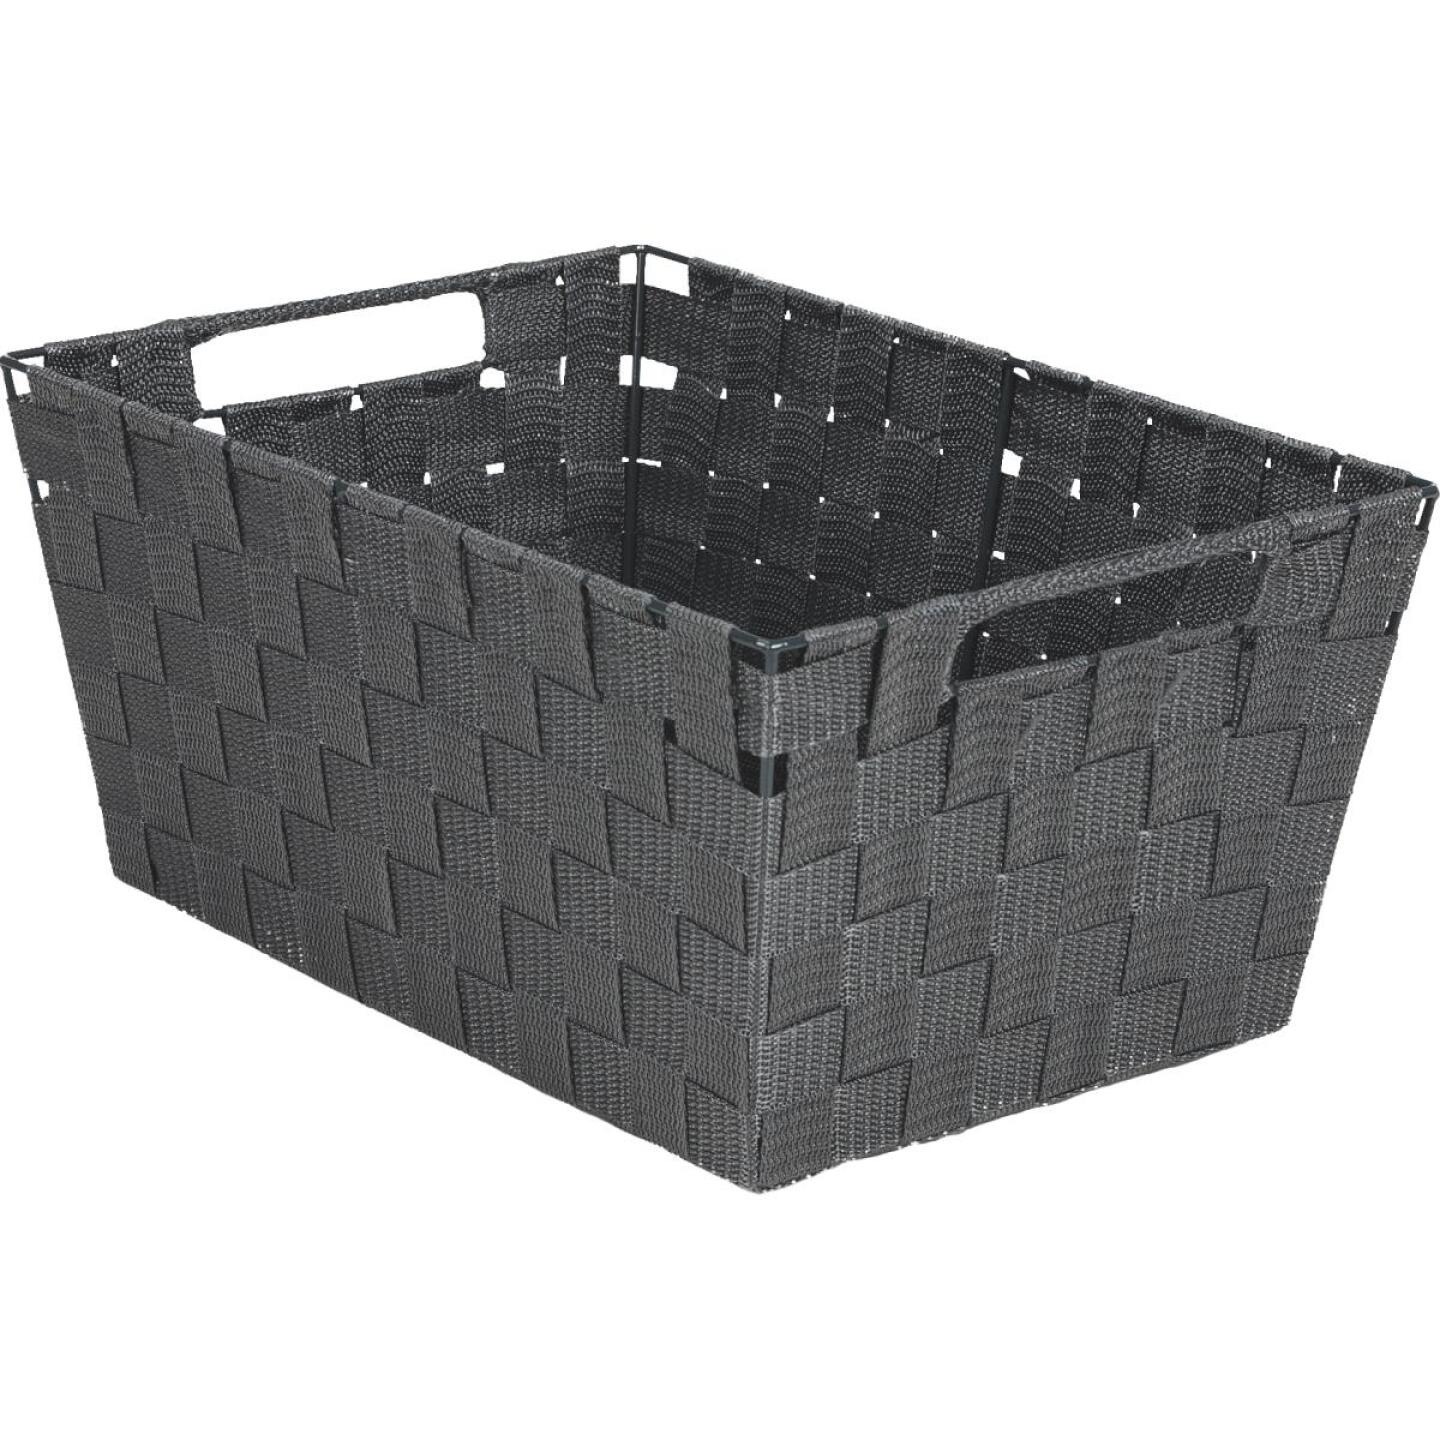 Home Impressions 10 In. W. x 6.75 In. H. x 14 In. L. Woven Storage Basket with Handles, Gray Image 1